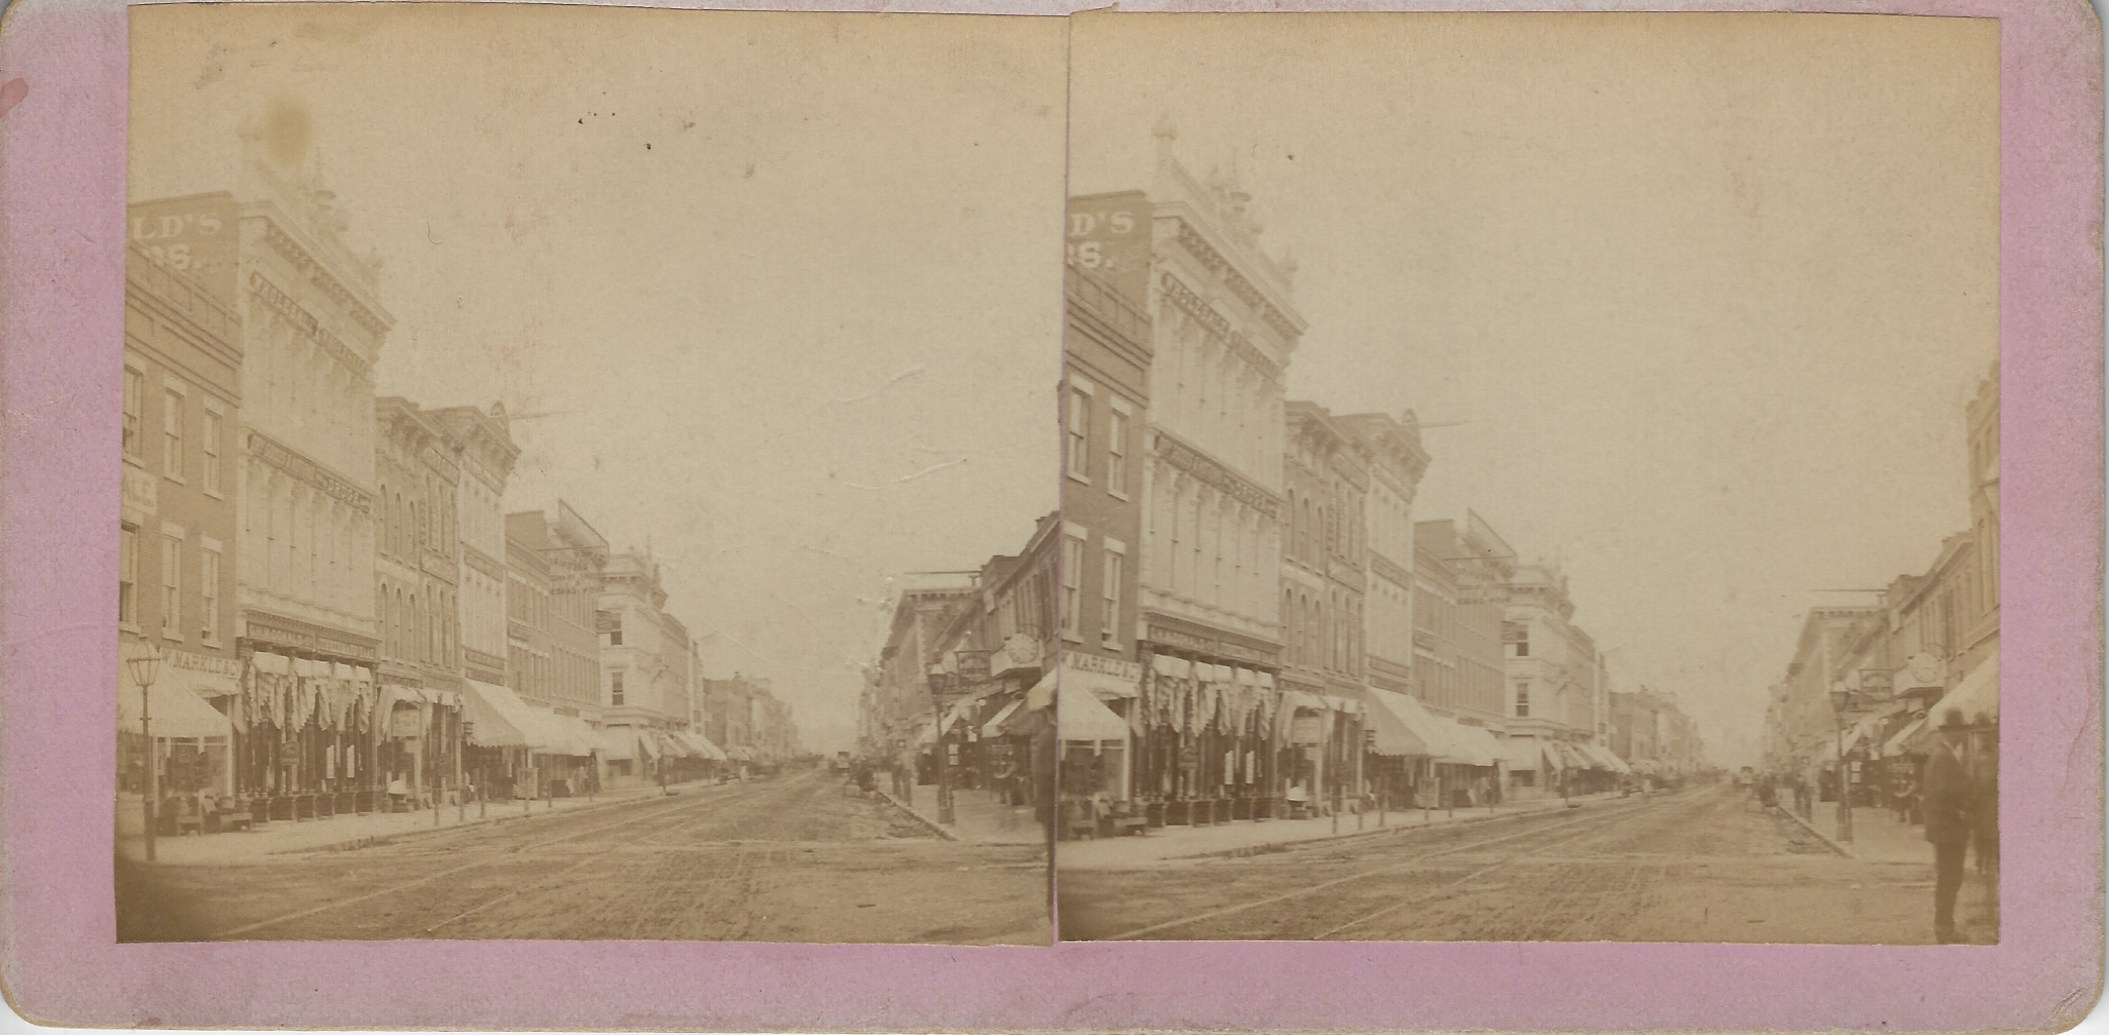 LJTP 100.293 - S. Root - 8th & Main St looking North - c1875